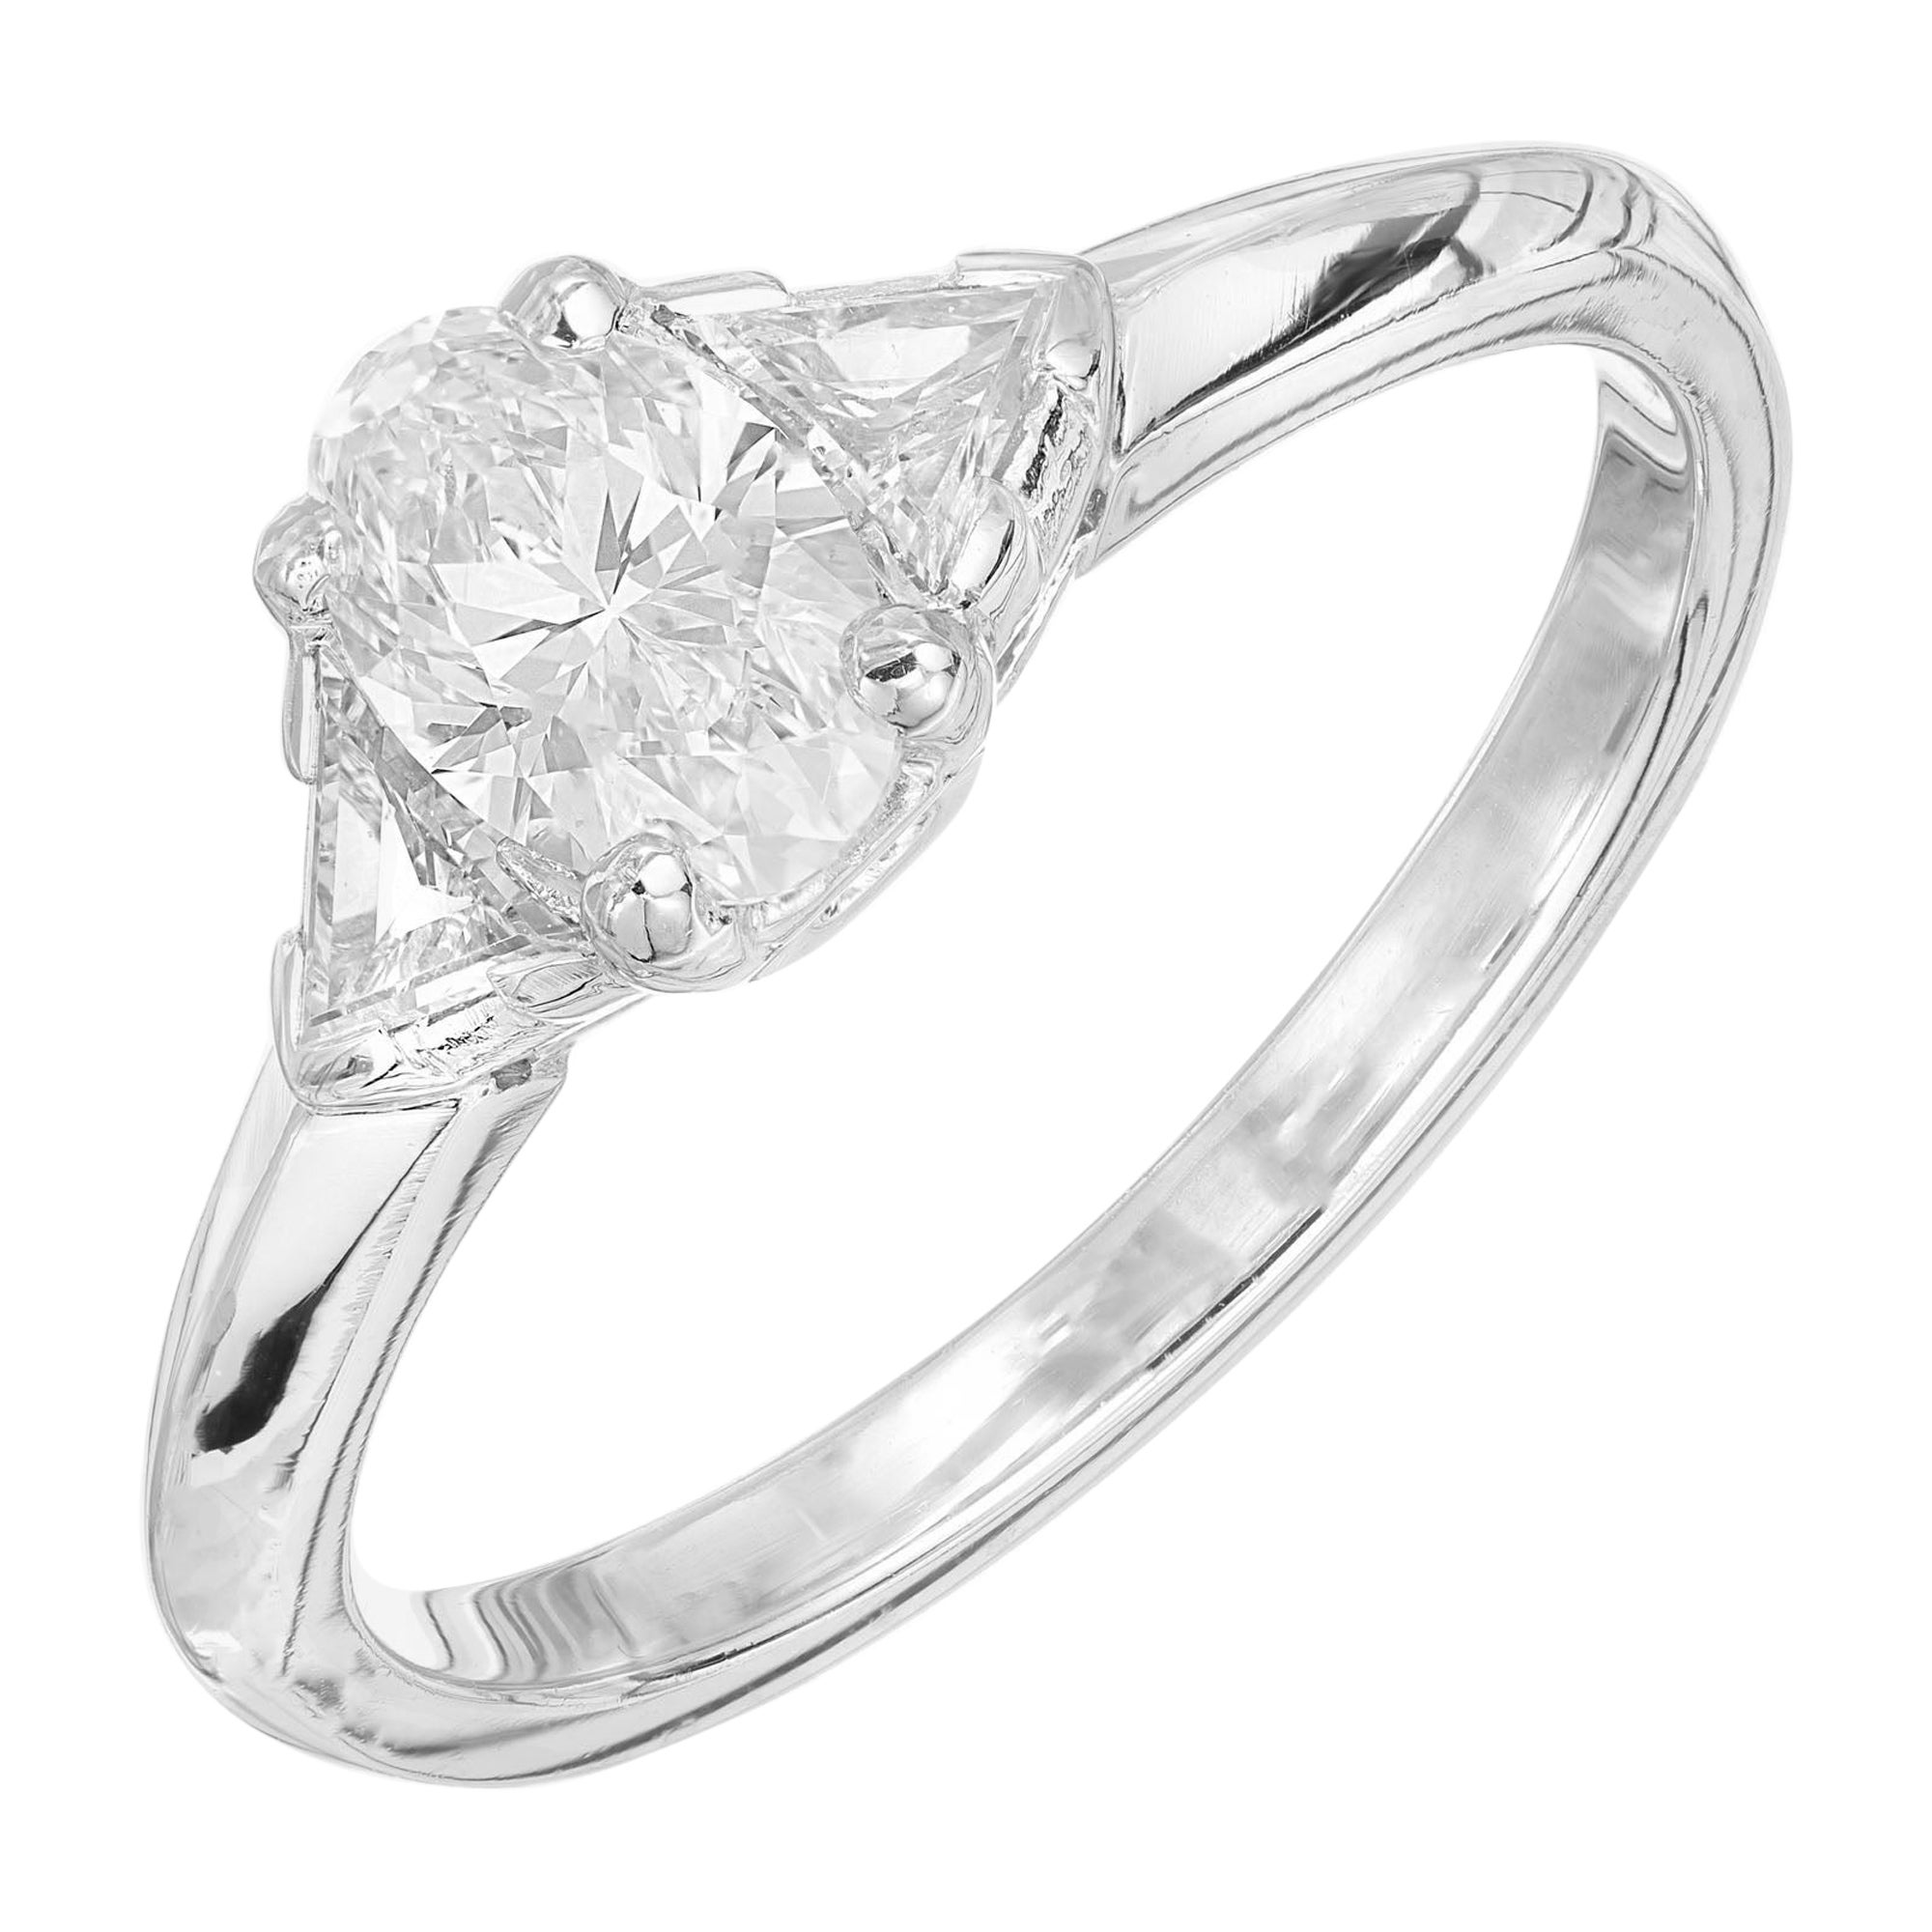 Tiffany & Co. GIA Certified .58 Carat Diamond Platinum Engagement Ring